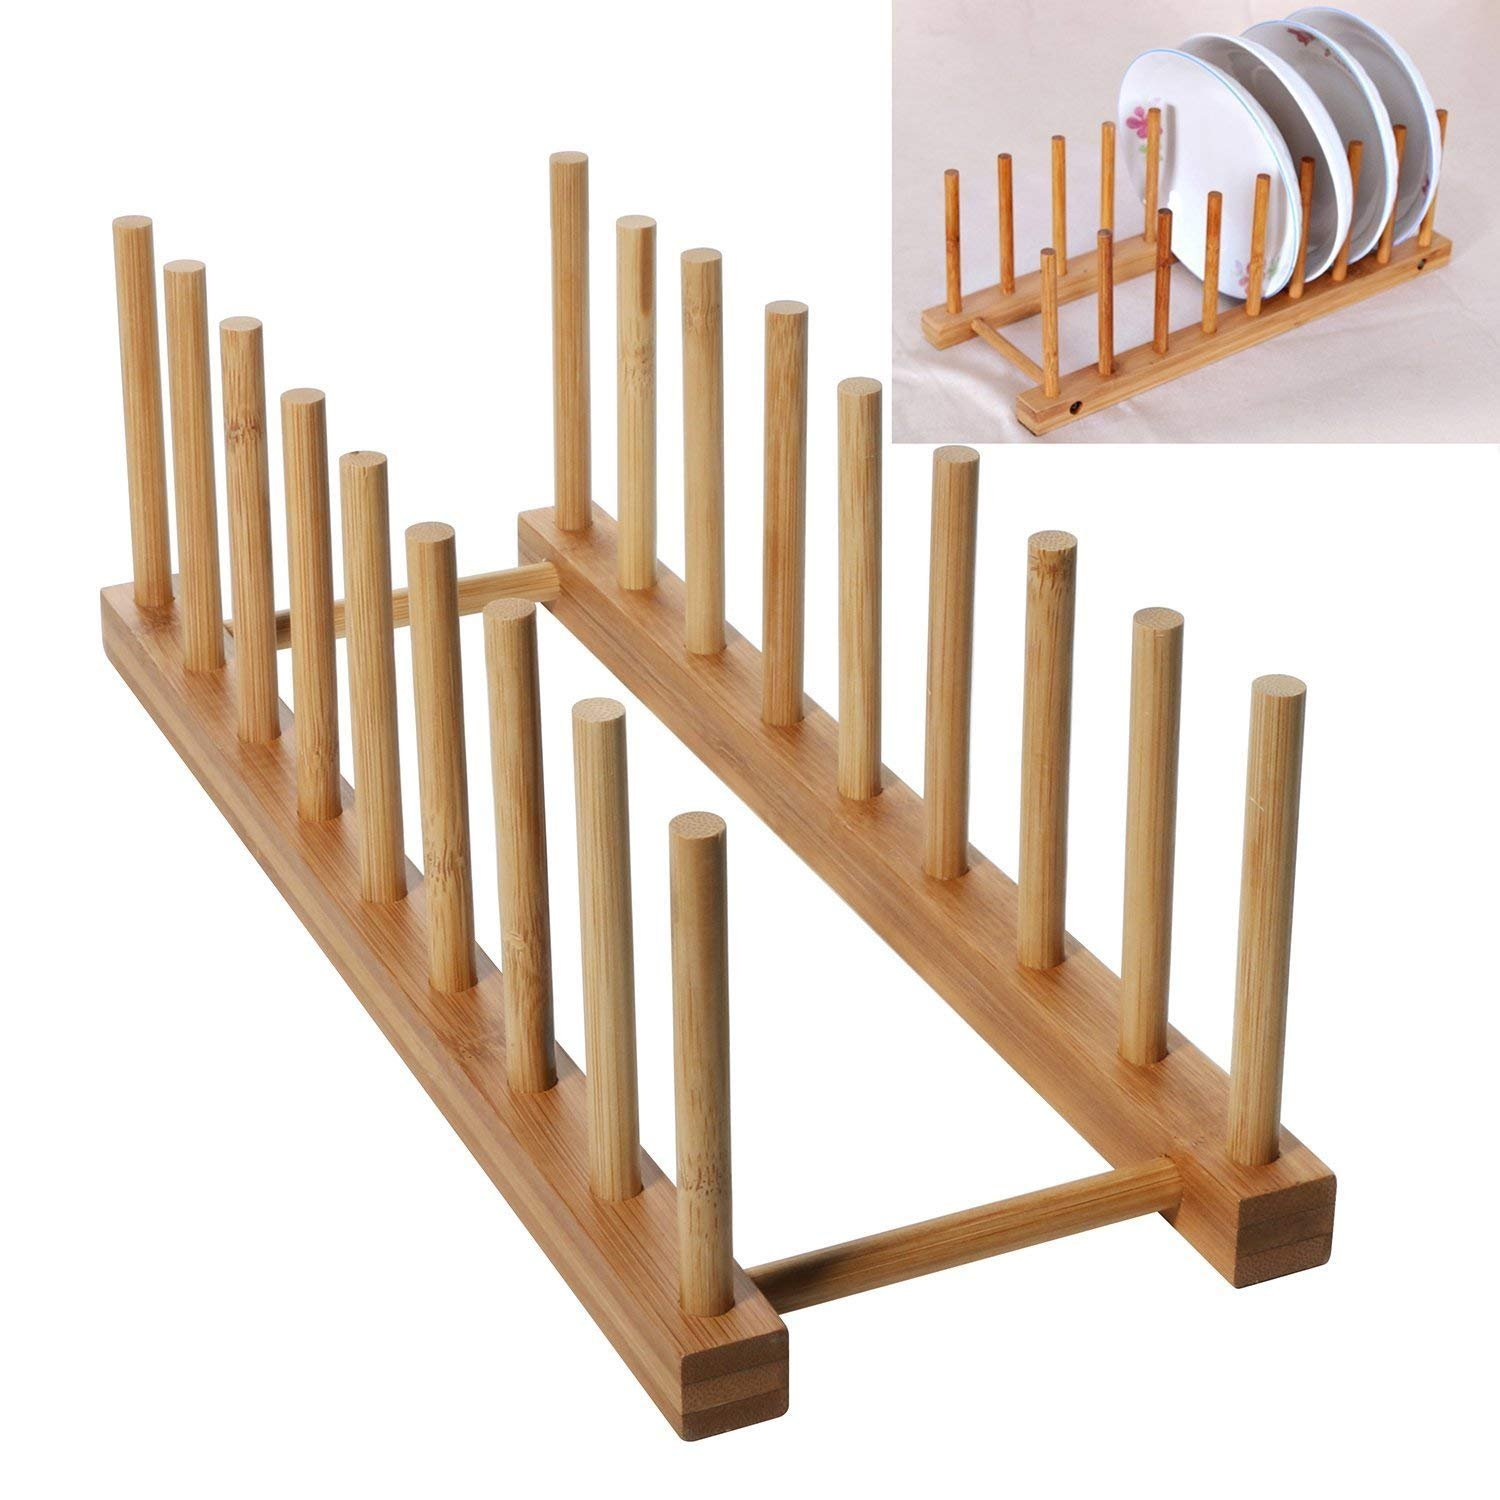 WINIT Bamboo Dish Drying Holder Rack, Vertical Plate Dishes Drainboard Drying Drainer Storage Holder Stand Kitchen Cabinet Organizer for Dish Plate Bowl Cup Pot Lid Book (Large/8) by WINIT (Image #1)